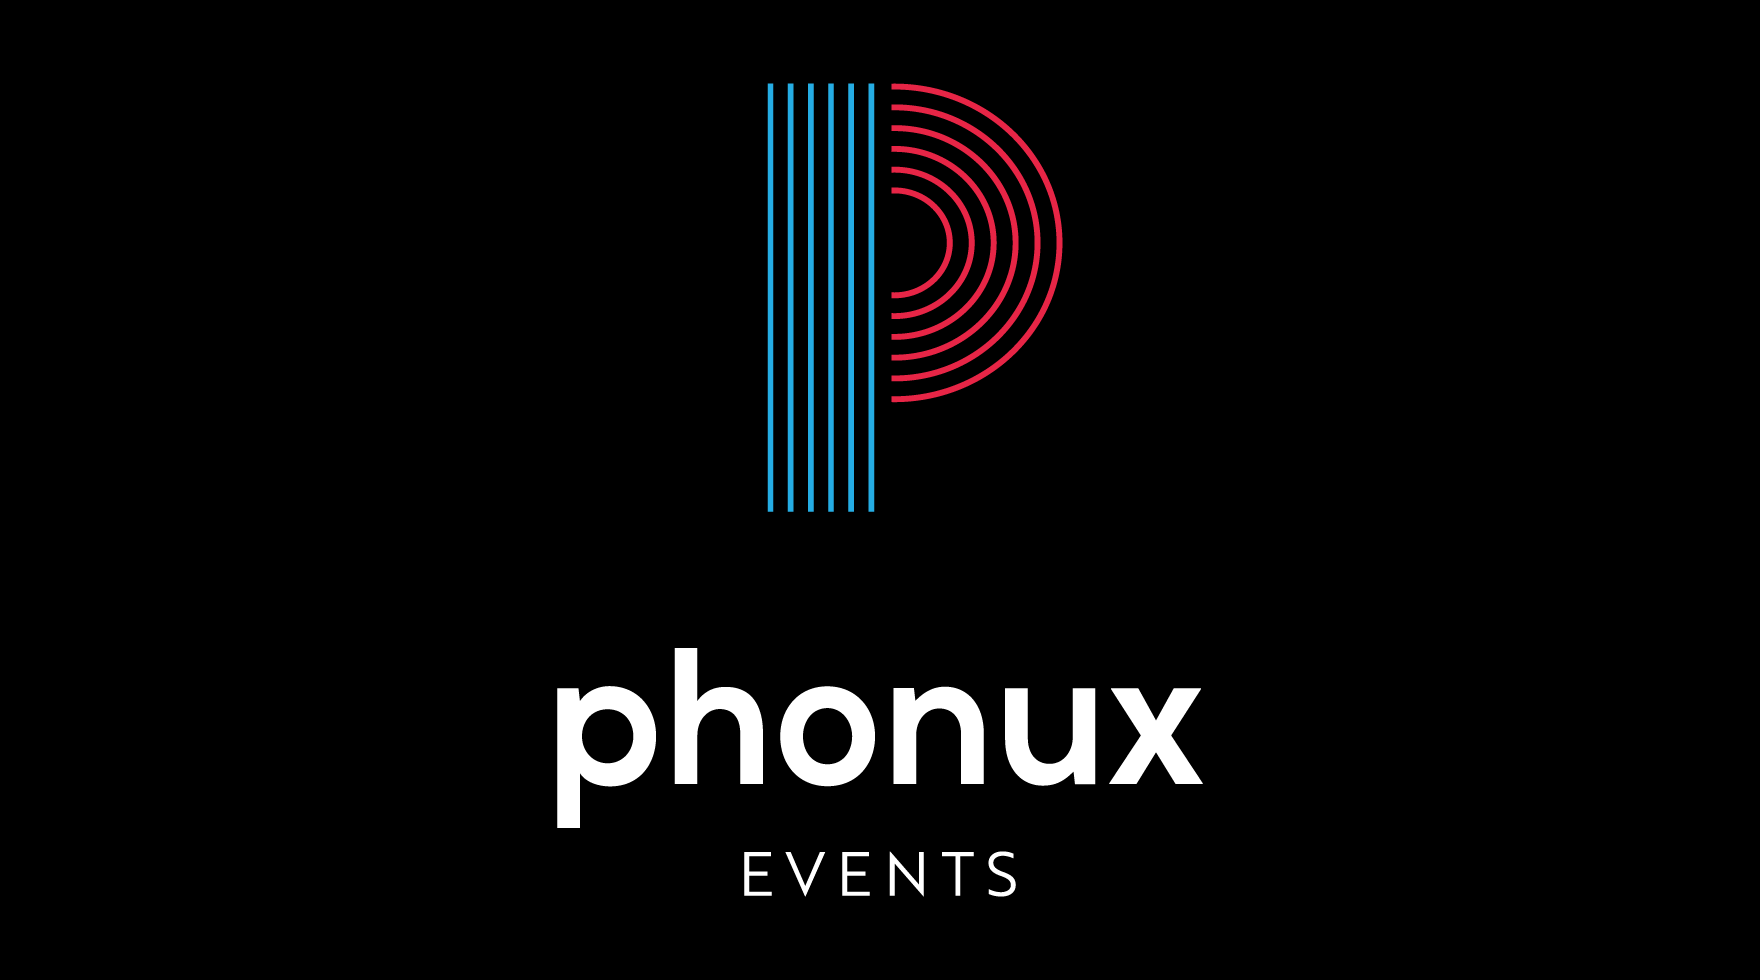 logo-design-phonux-events-by-webkreation